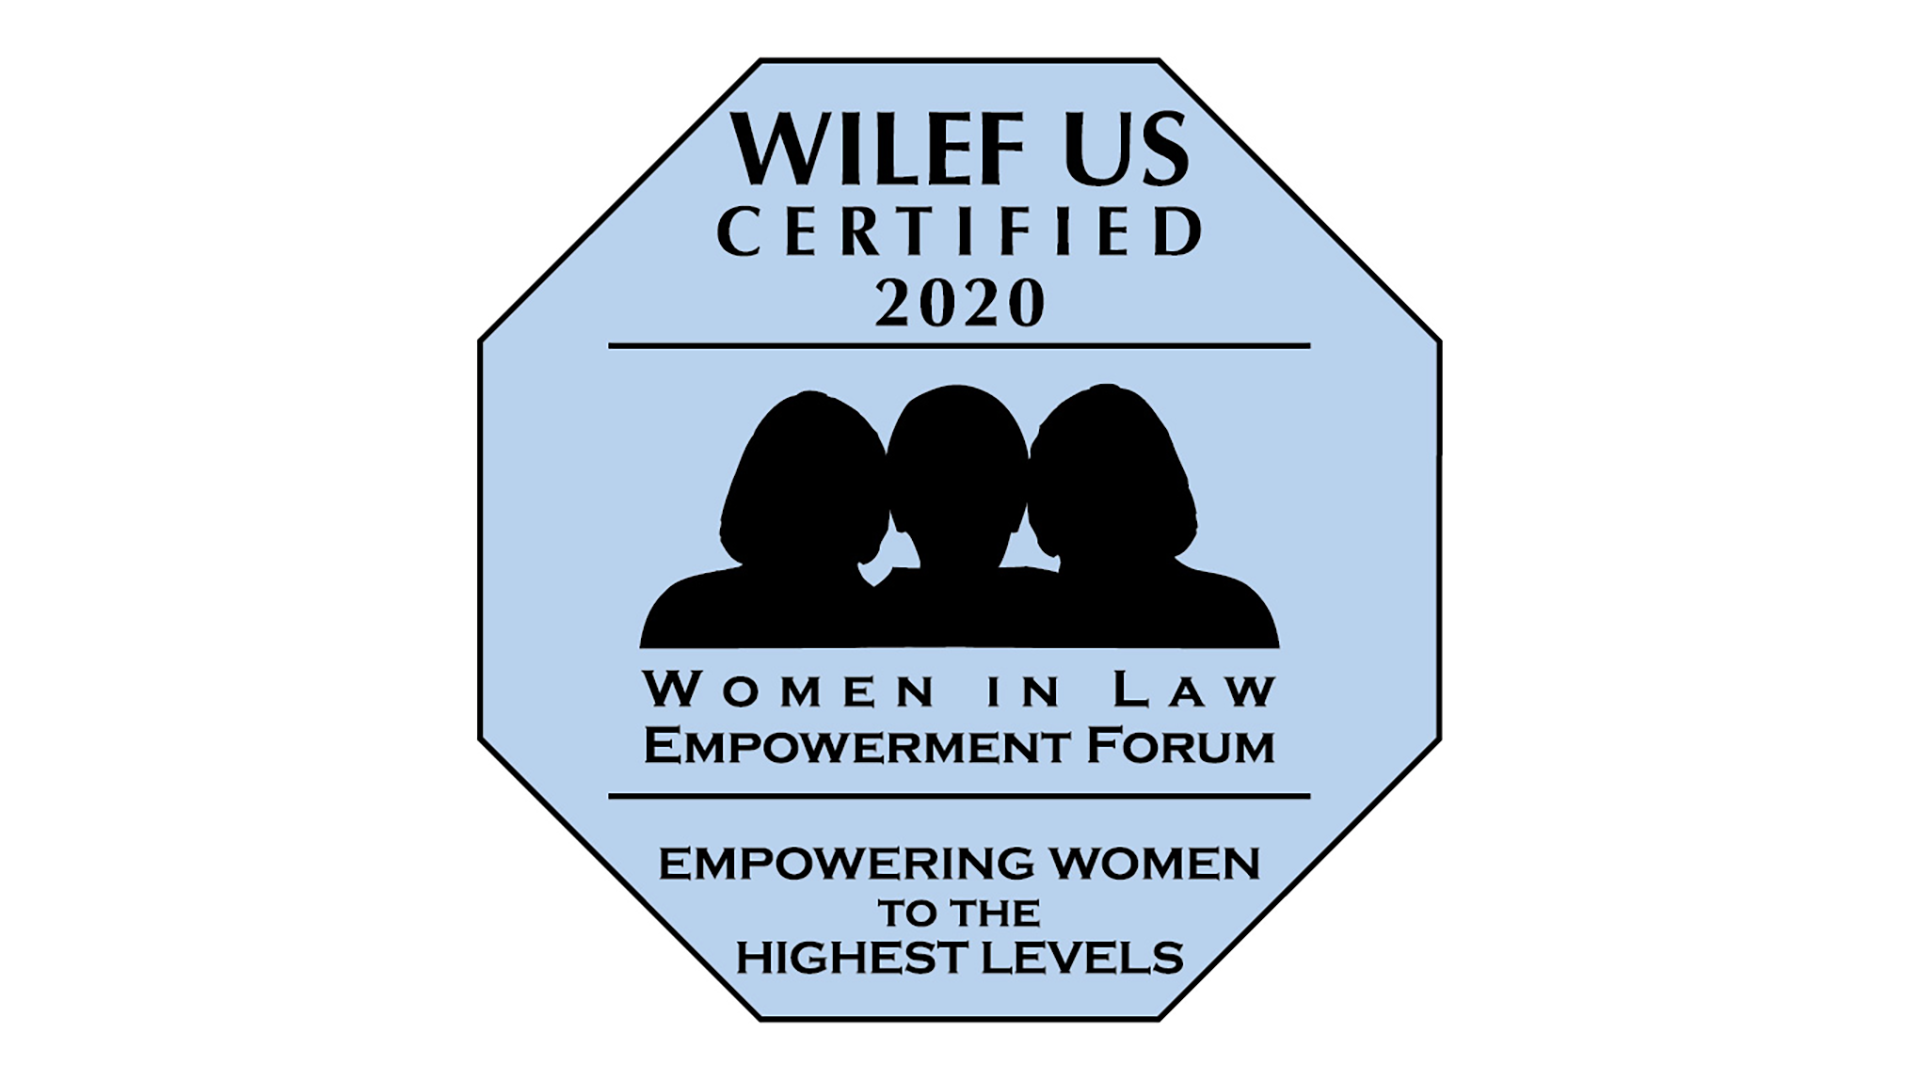 WILEF US Certified 2020 badge